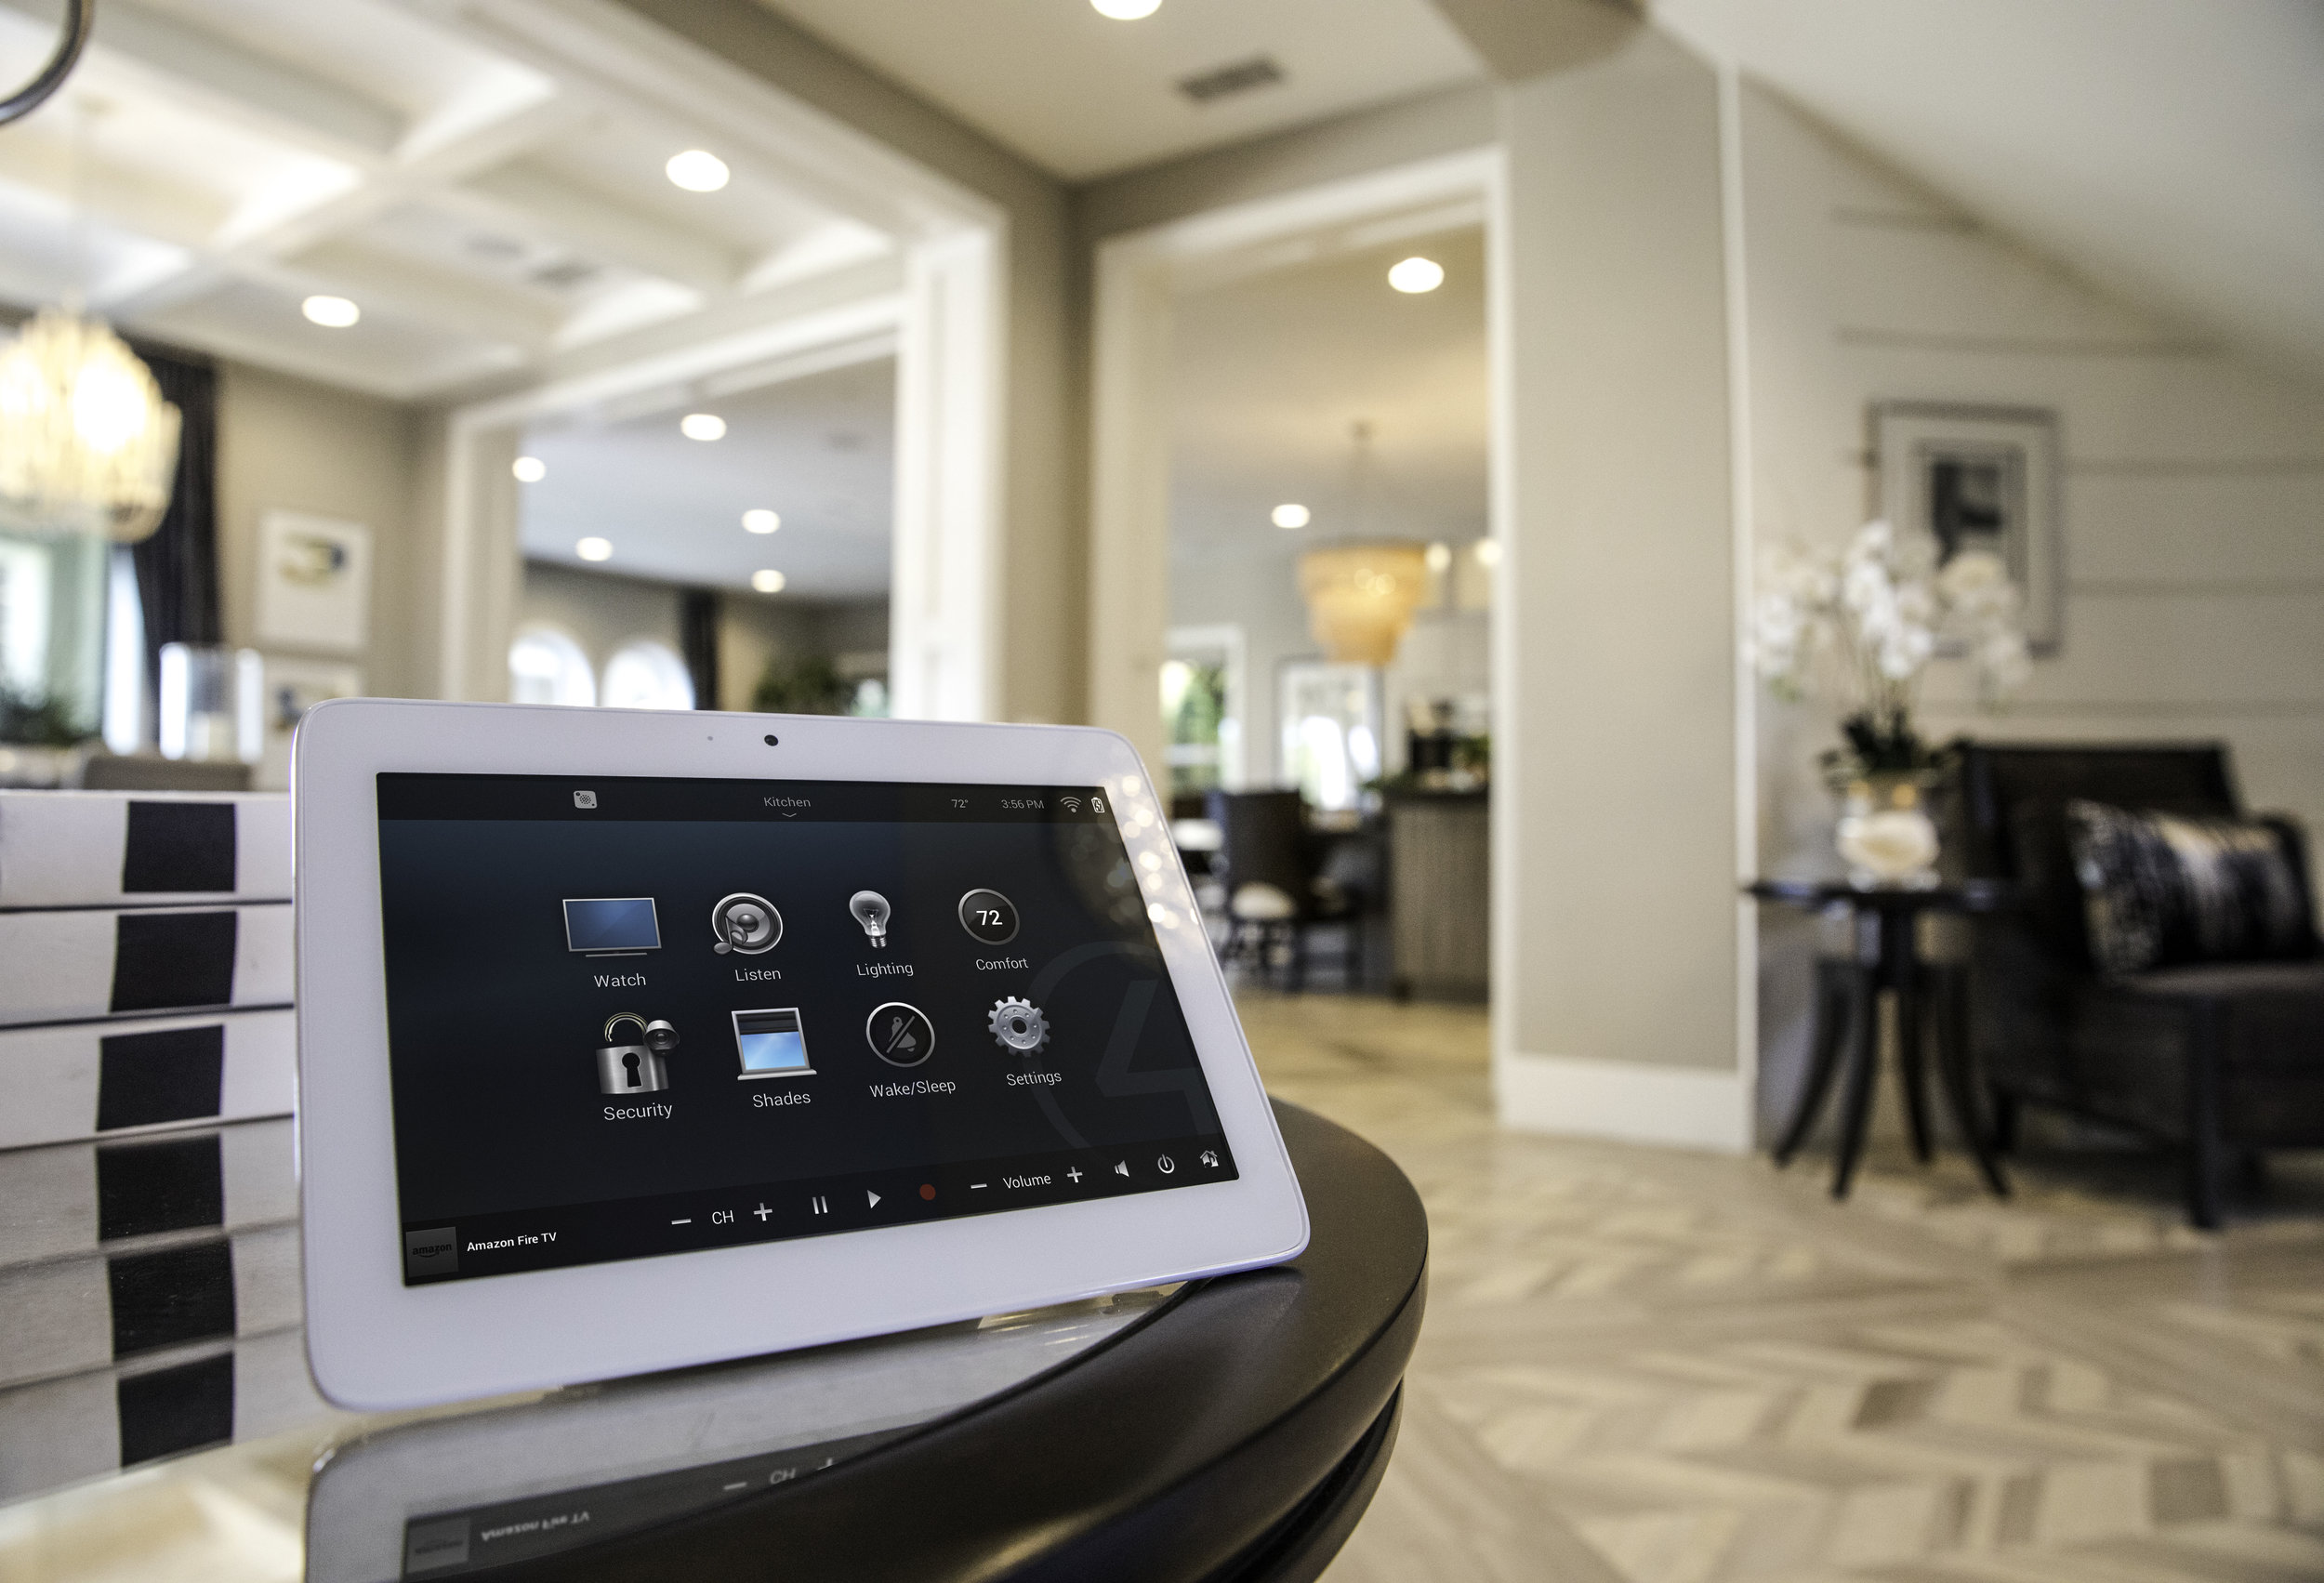 Luxury_Home_Automation_Control4_Touchscreen_Entrance_Hallway_Table_Mayfair_W1J